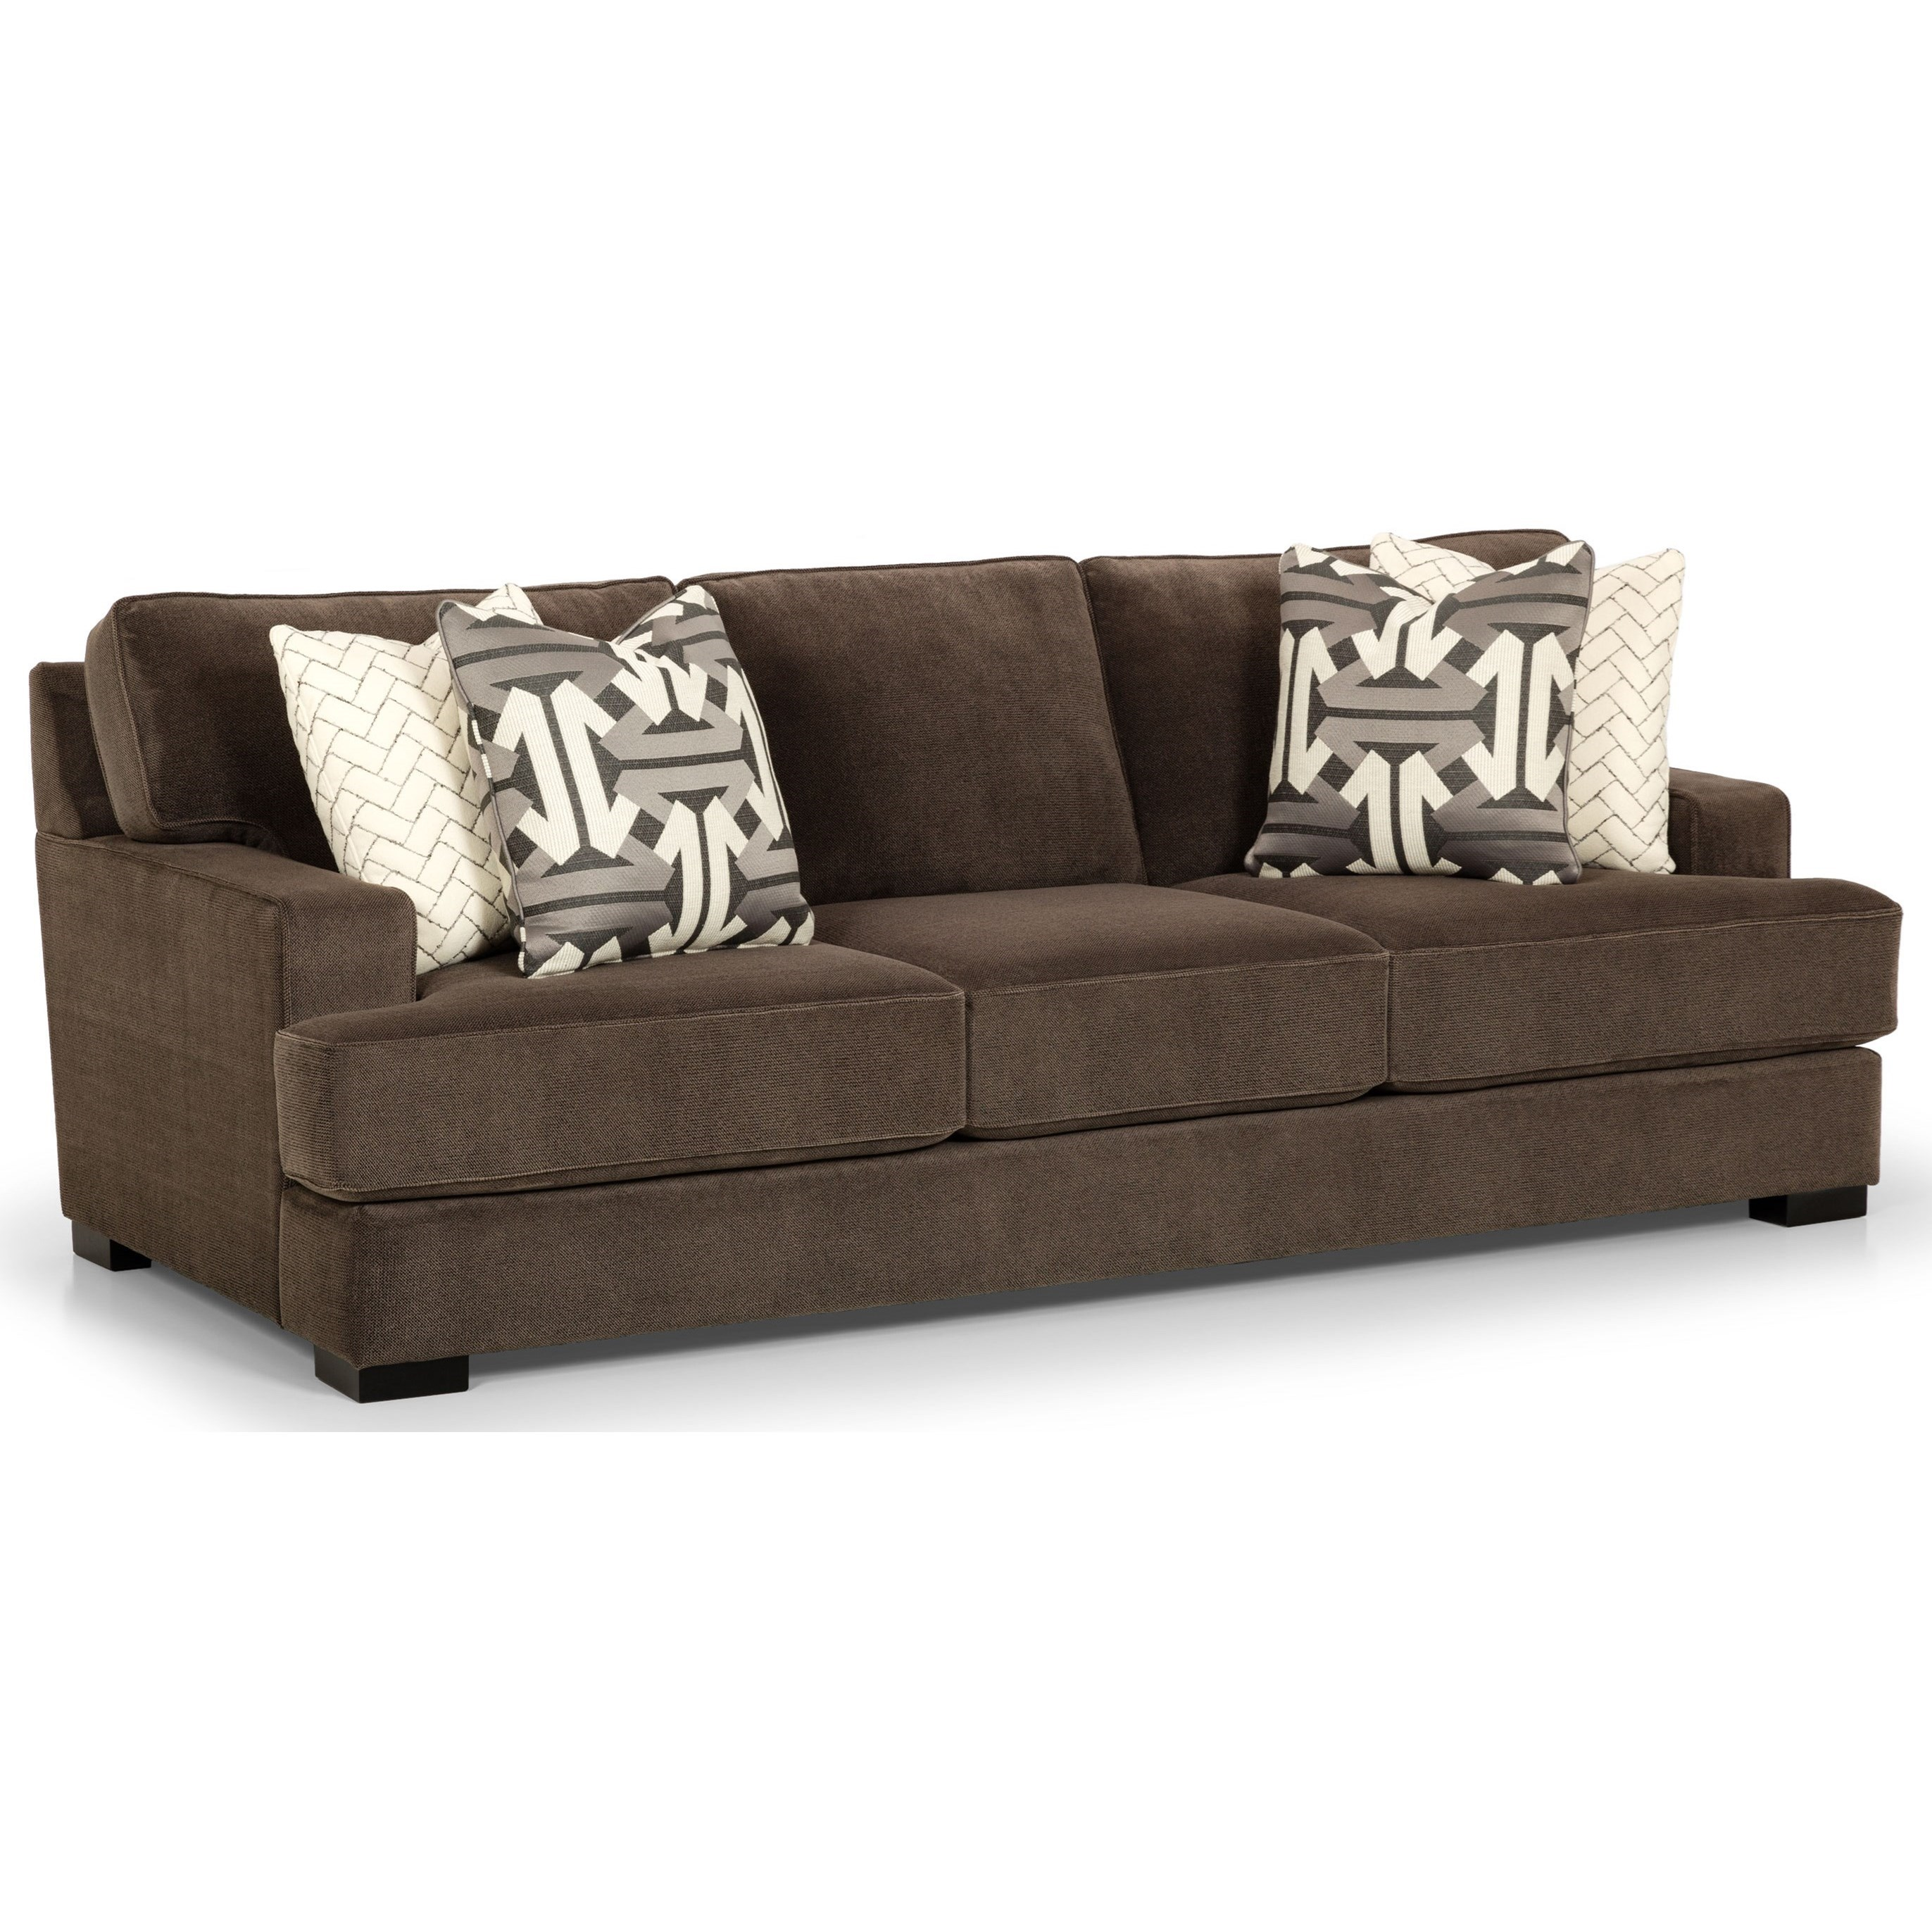 417 Sofa by Stanton at Wilson's Furniture